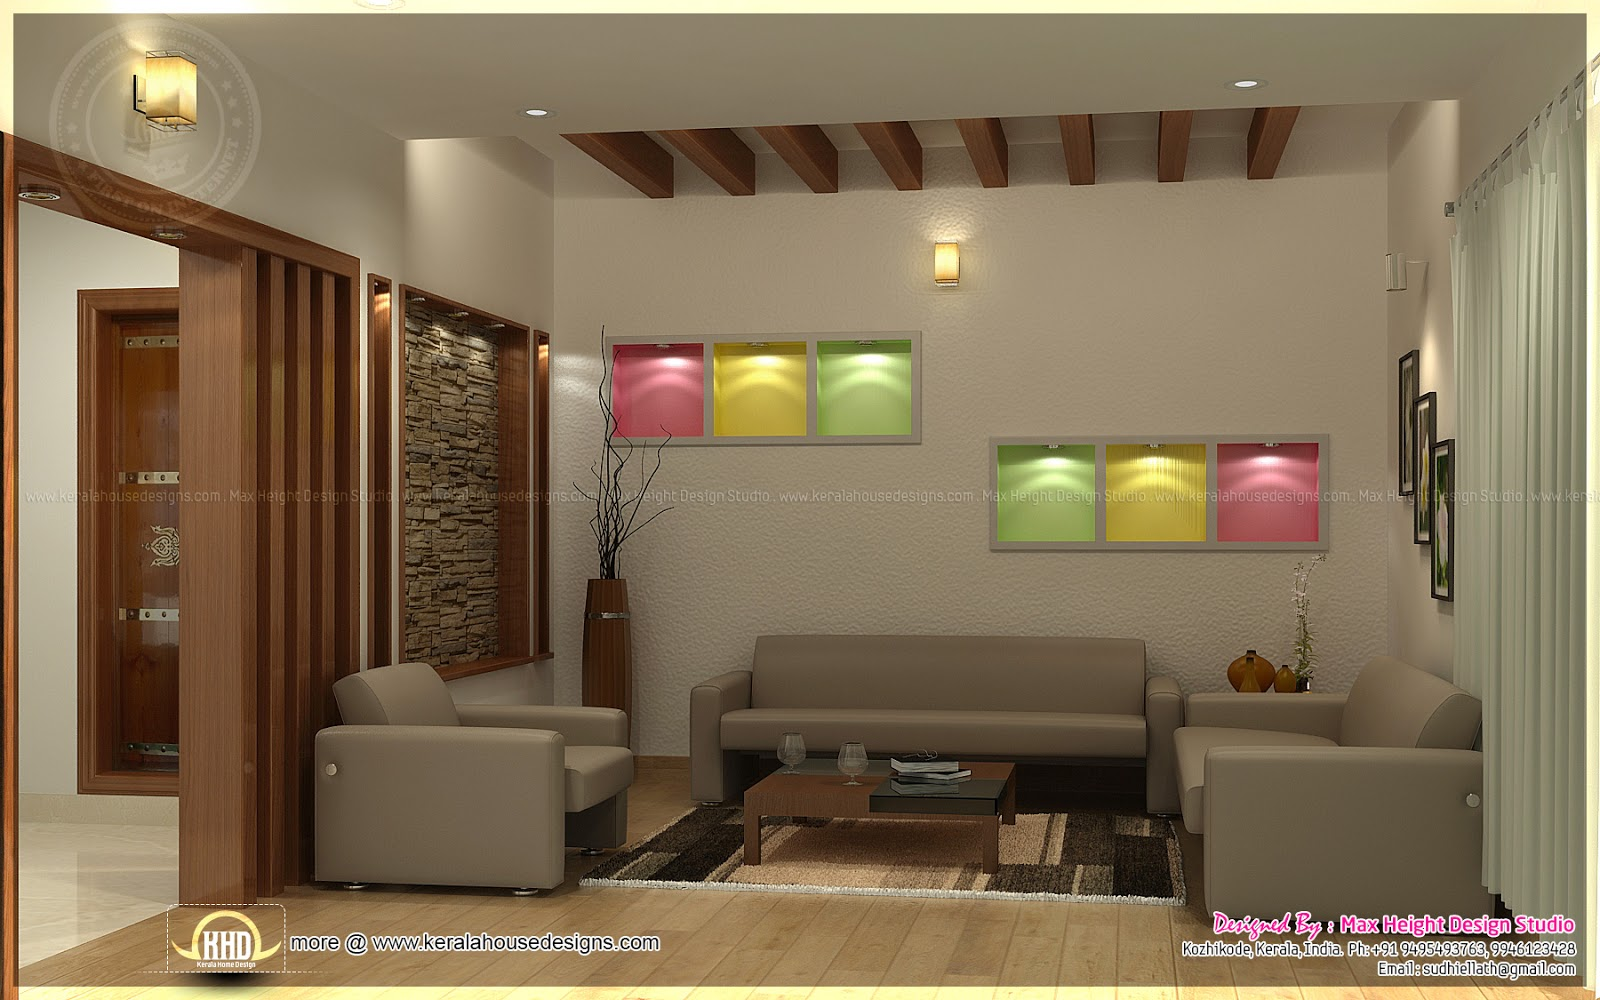 Beautiful interior ideas for home kerala home design and - Room interior designs ...